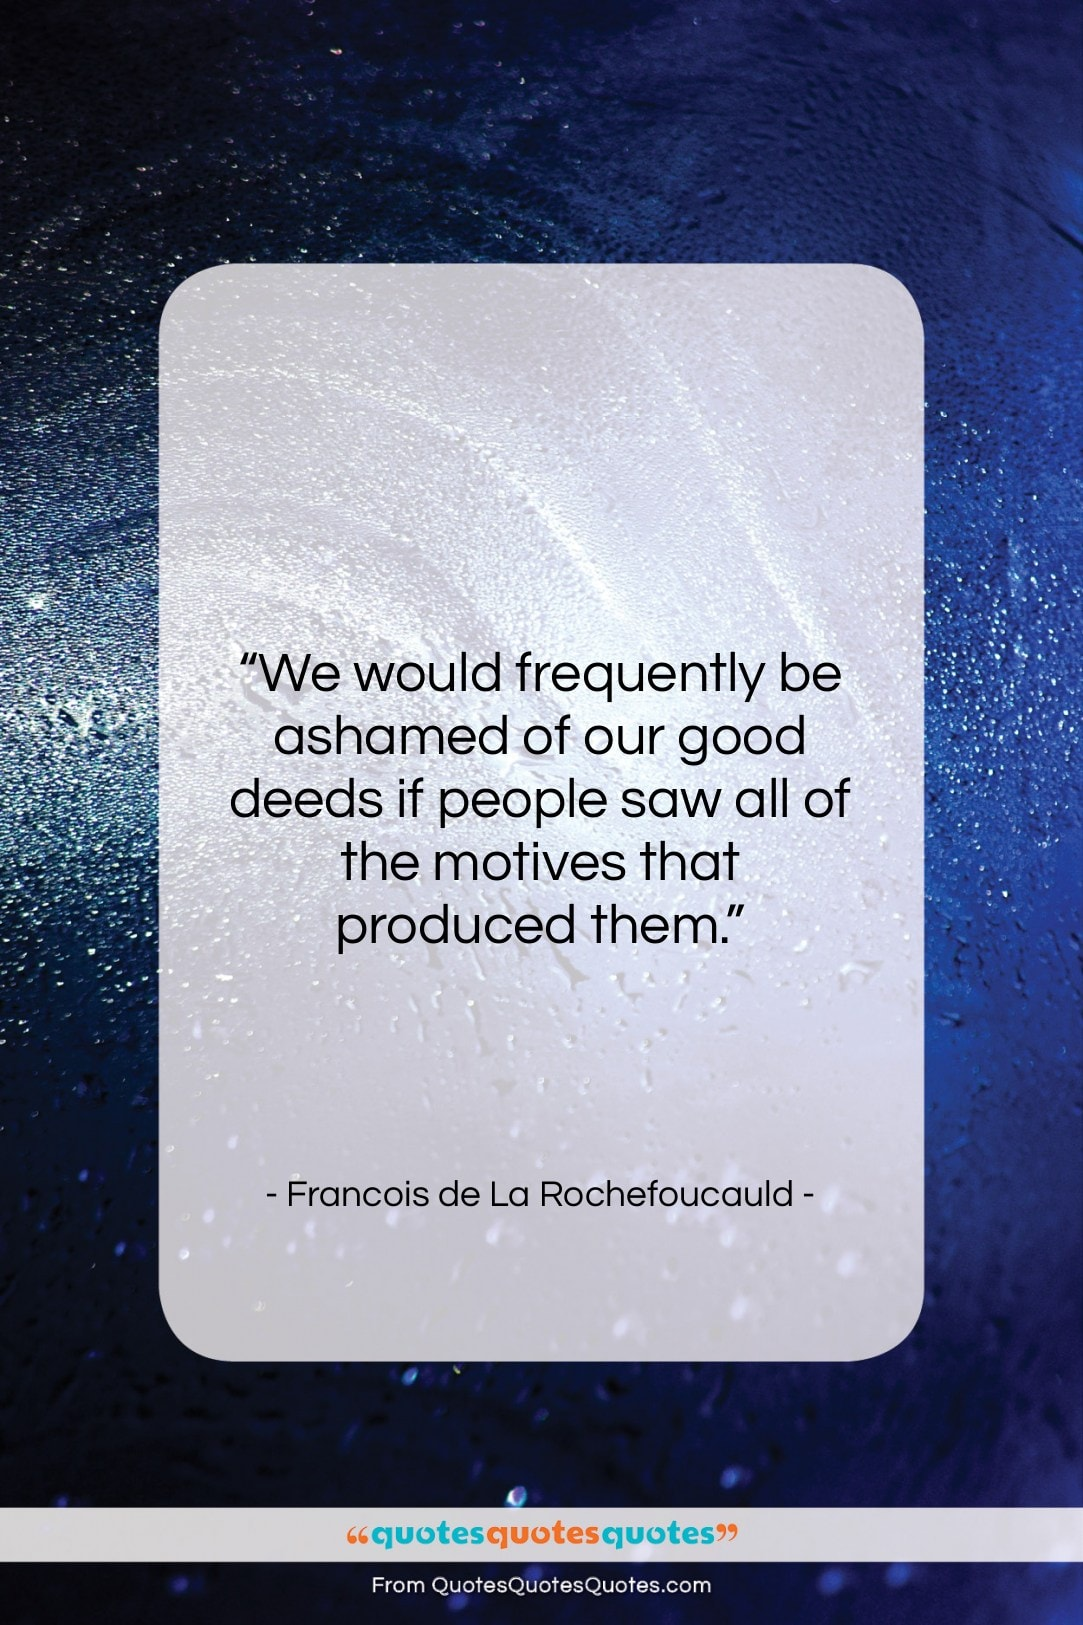 """Francois de La Rochefoucauld quote: """"We would frequently be ashamed of our…""""- at QuotesQuotesQuotes.com"""